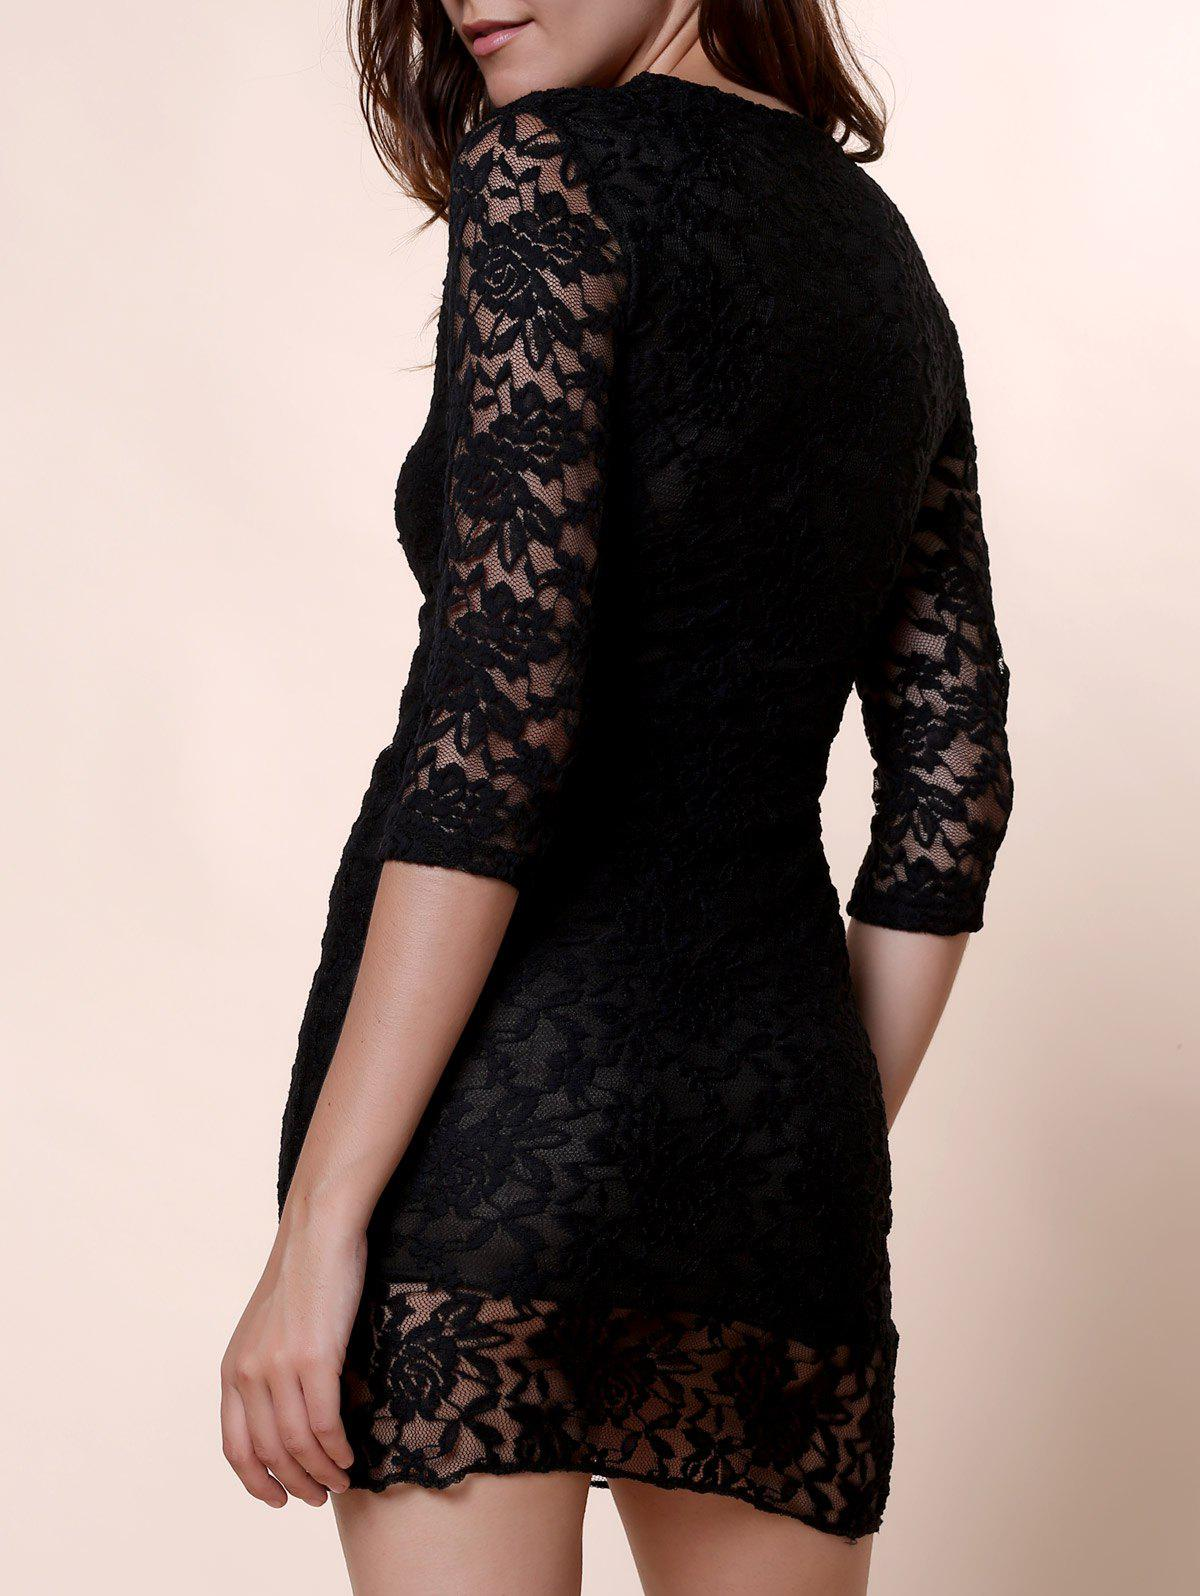 Sexy Plunging Neck 3/4 Sleeve Solid Color See-Through Women's Lace Dress - BLACK ONE SIZE(FIT SIZE XS TO M)